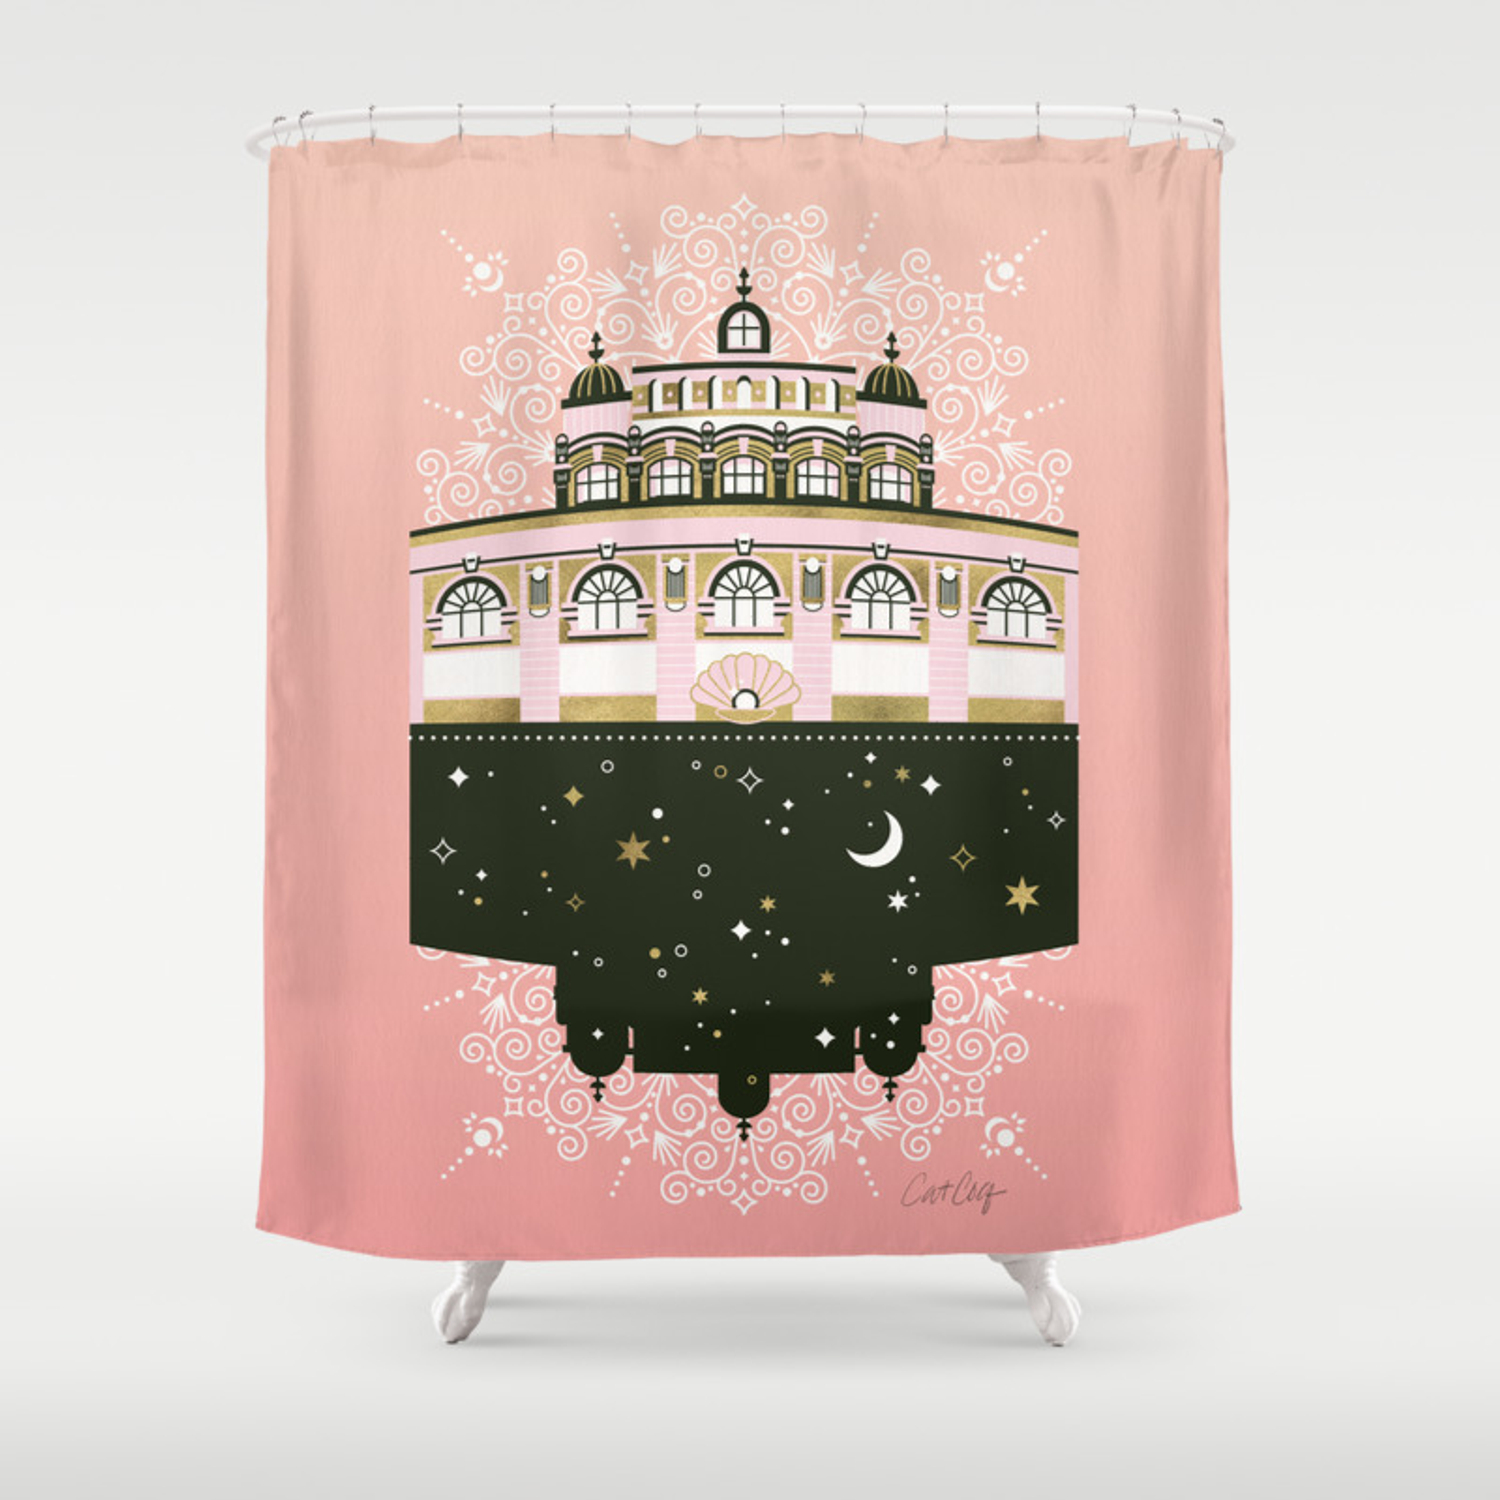 Budapest Bath House Peach Gold Palette Shower Curtain By Catcoq Society6